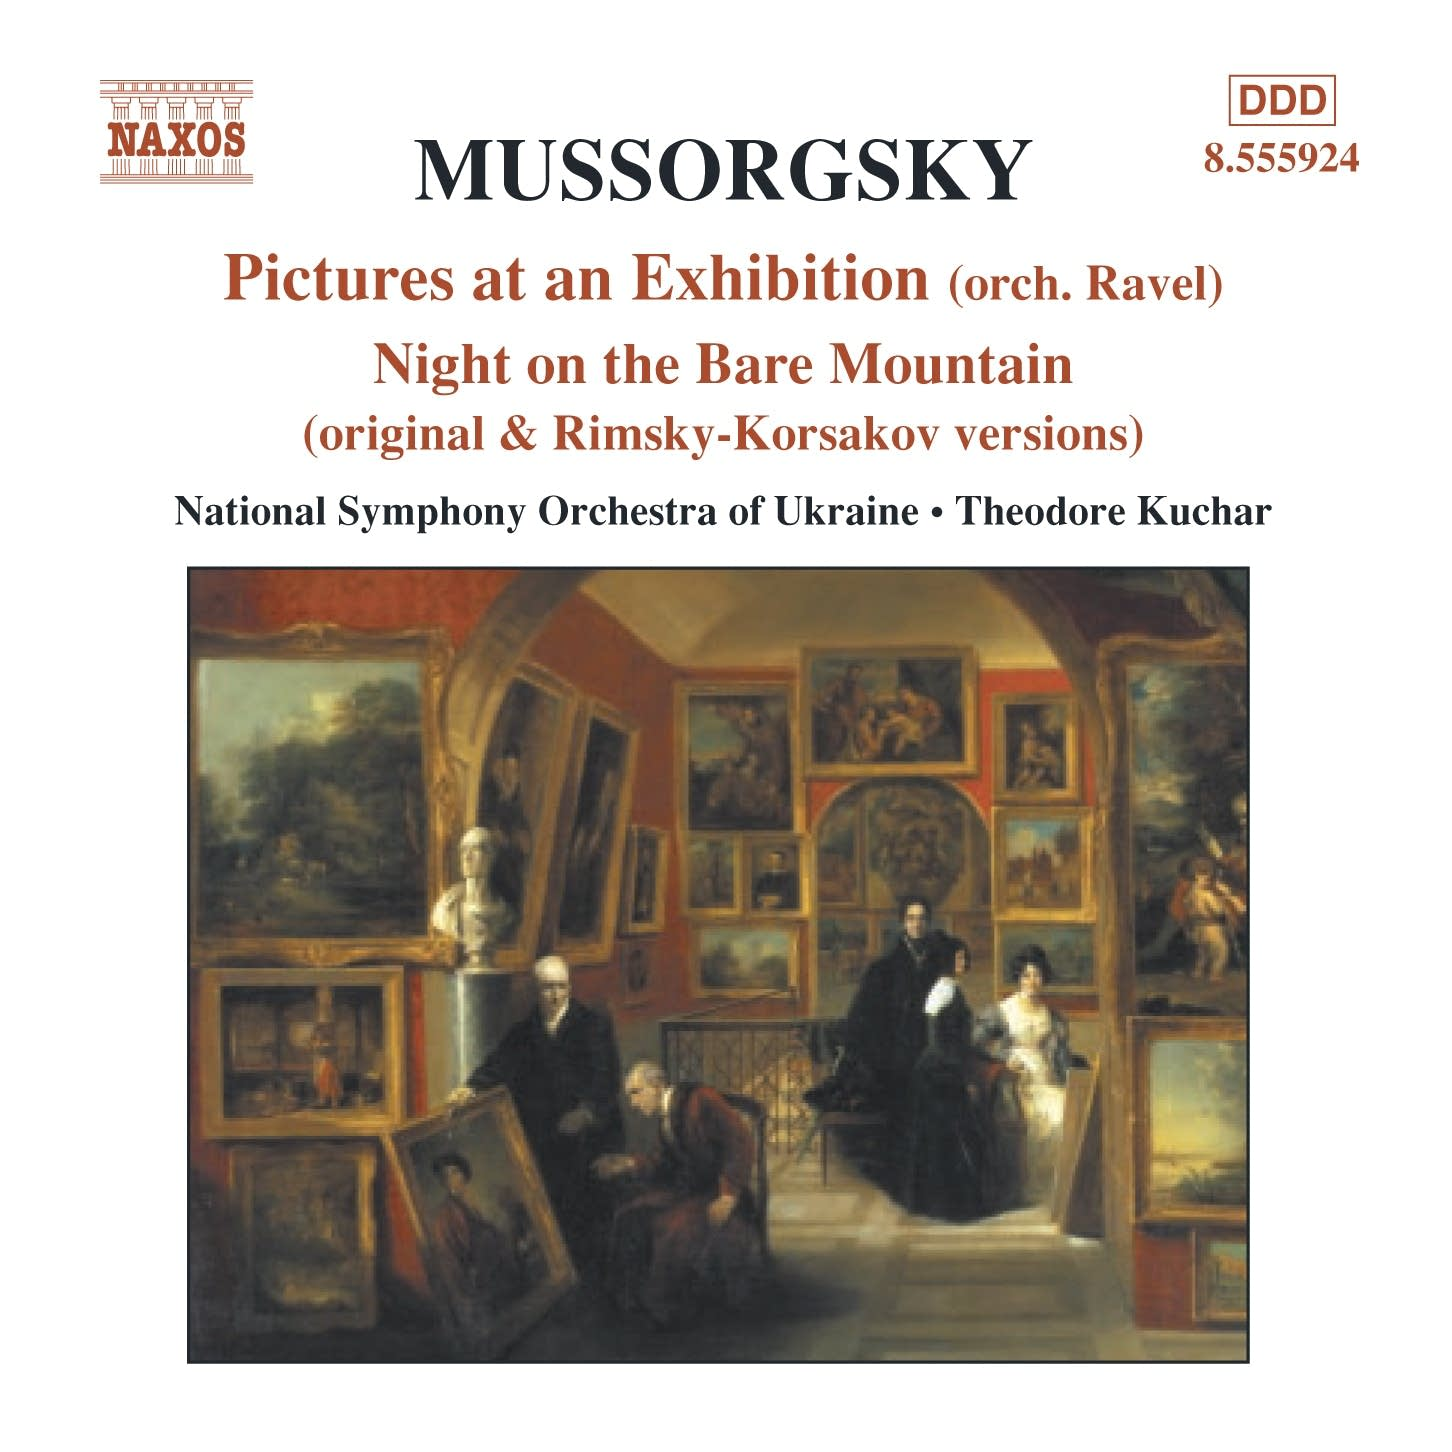 Modest Mussorgsky - Pictures at an Exhibition: I. Promenade